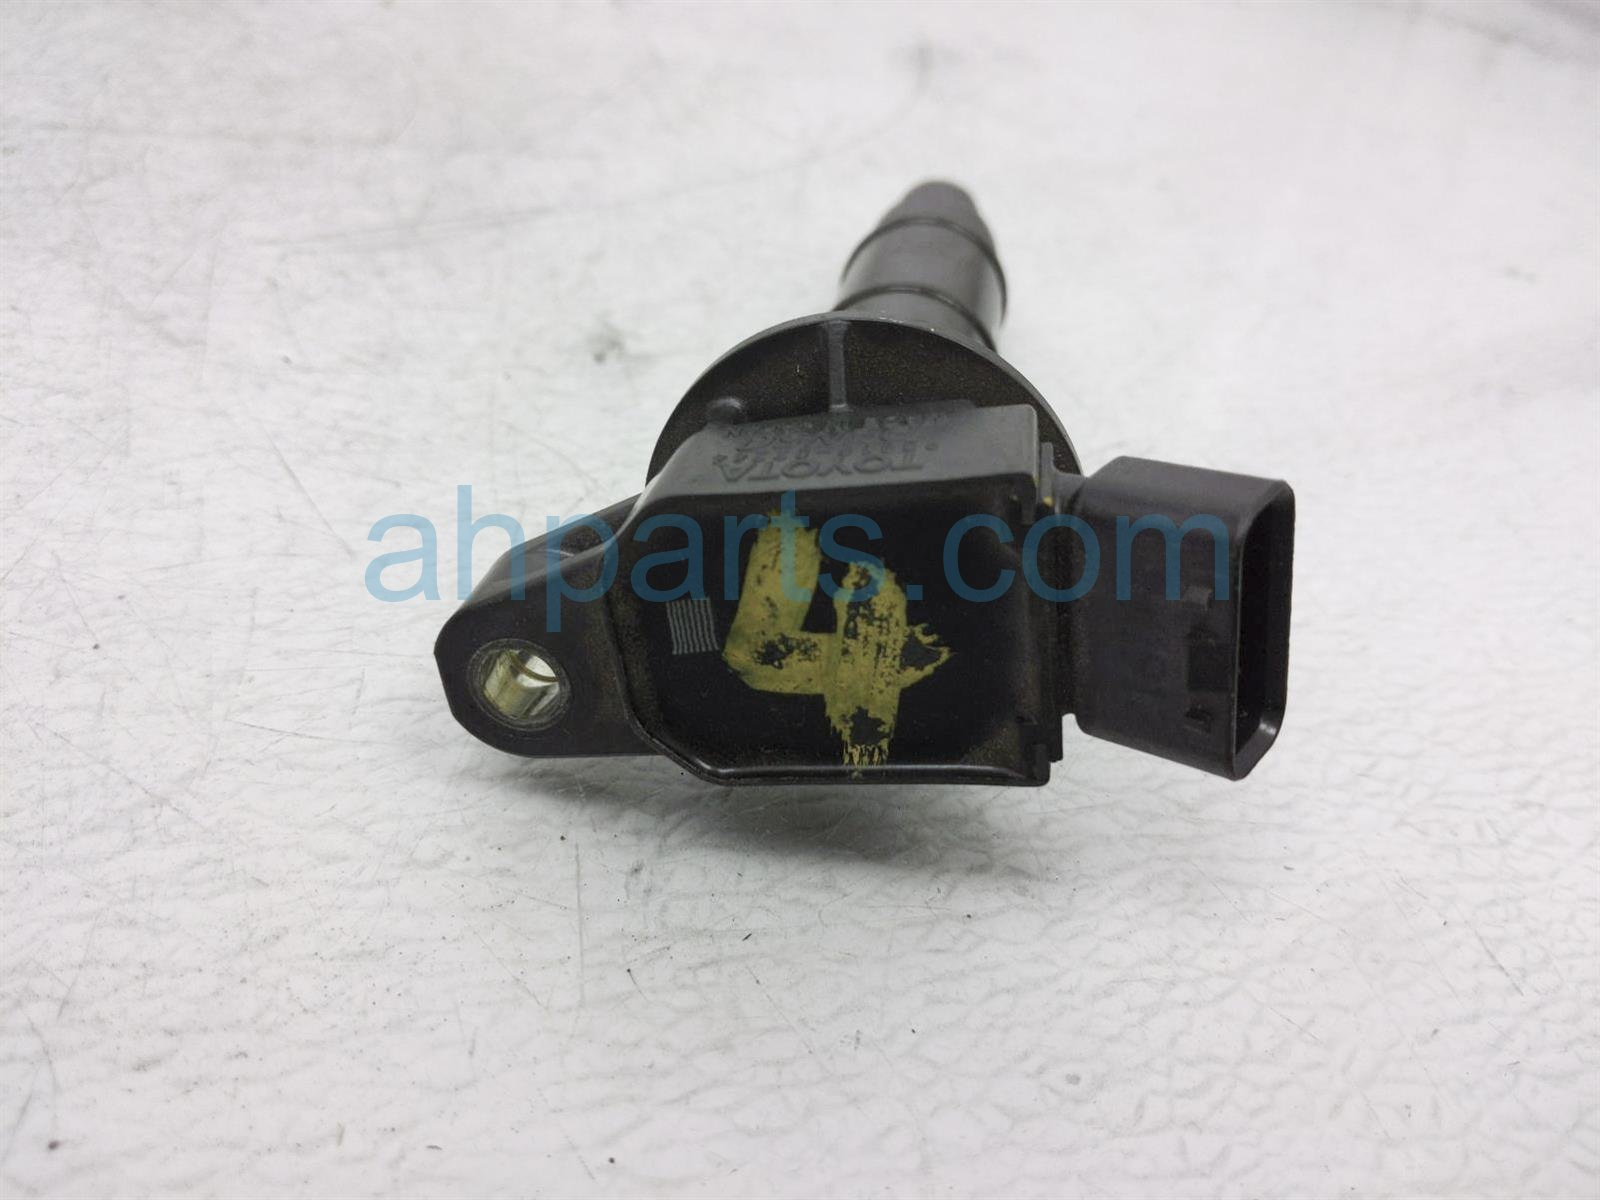 2009 Scion Tc Scion Ignition Coils (per 1) 90919 02266 Replacement